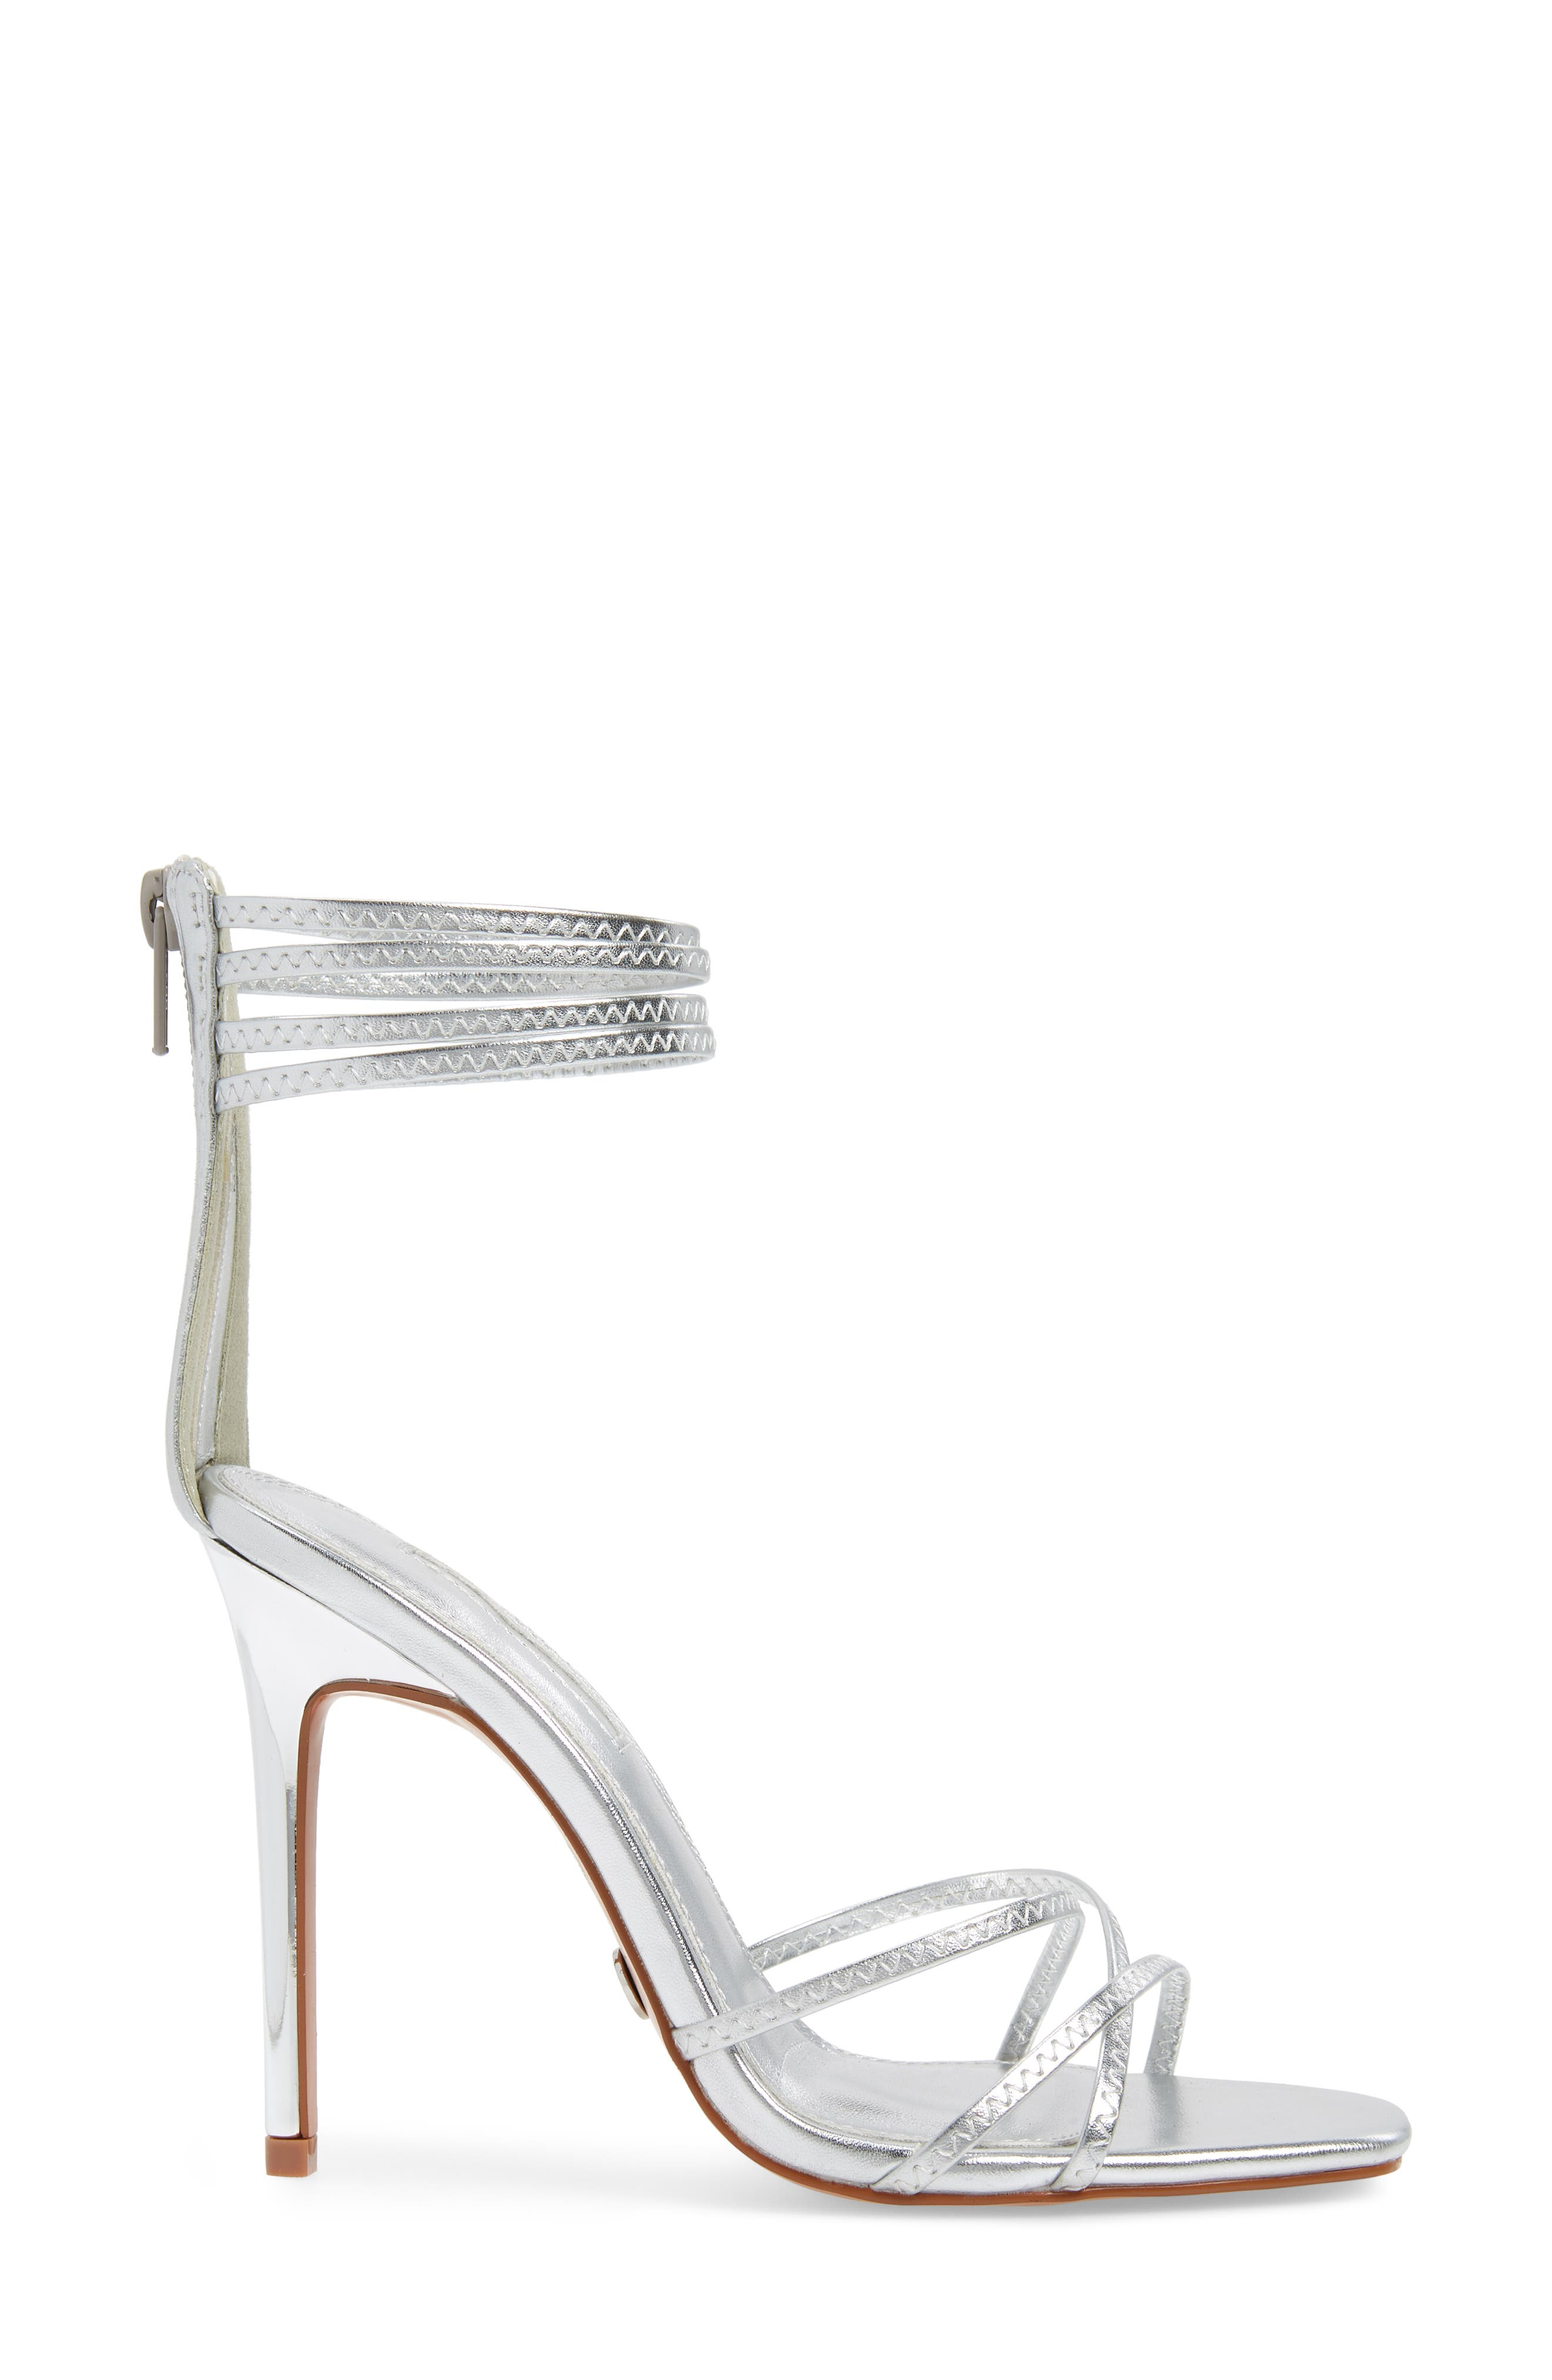 TOPSHOP, Rich Tall Strappy Sandal, Alternate thumbnail 3, color, SILVER